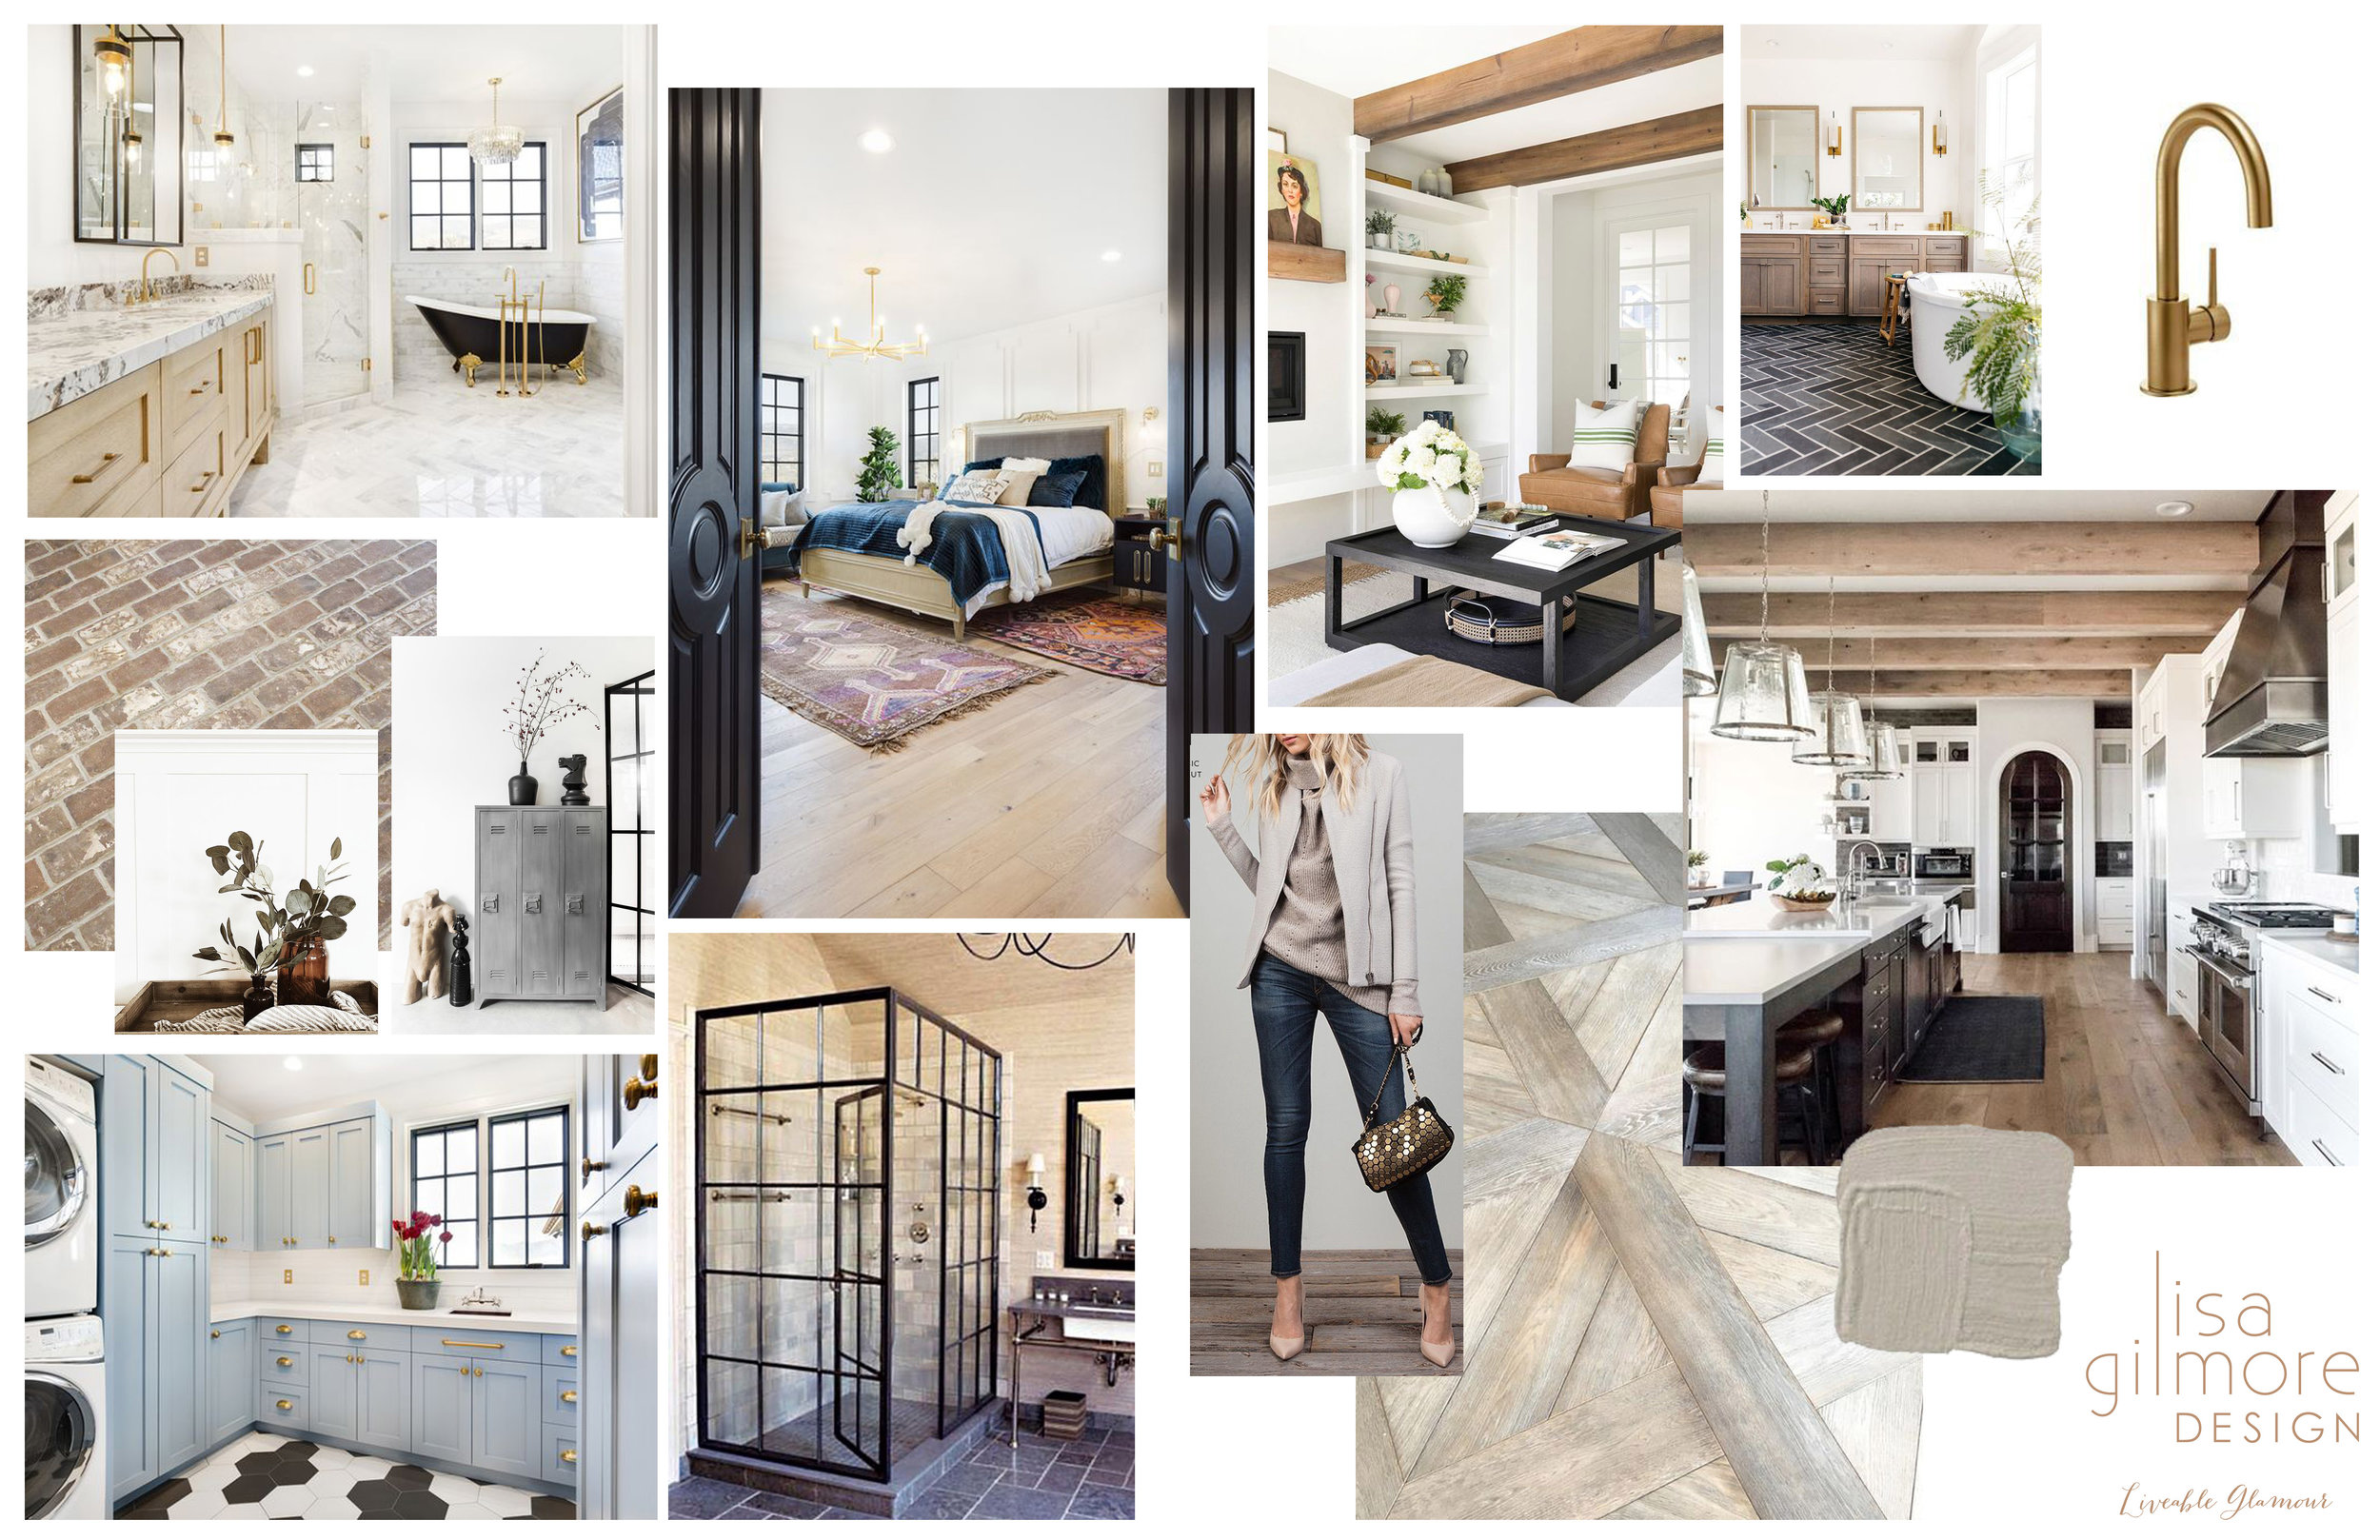 When casual and chic collide so effortlessly - a custom home in collaboration with LaBram Homes